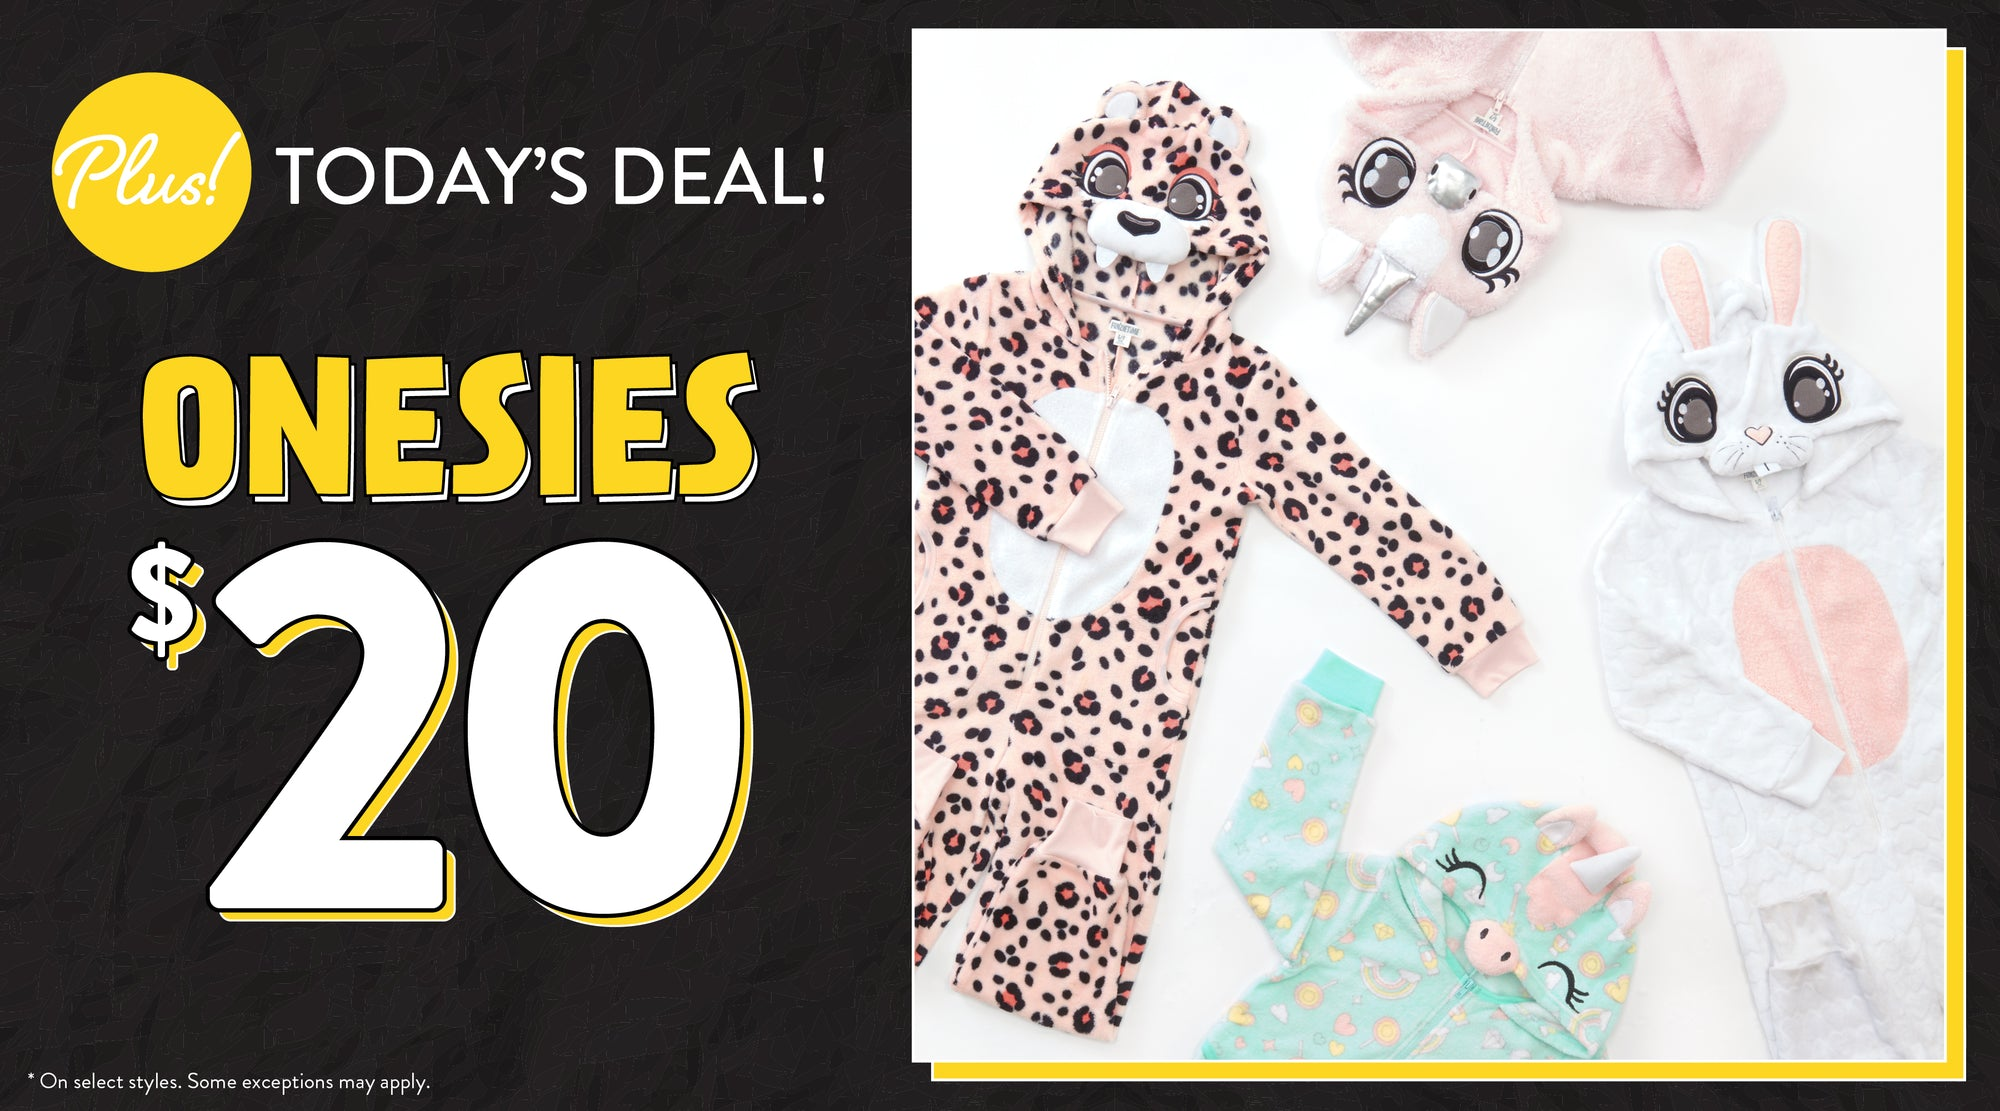 Black Friday - $20 Onesies